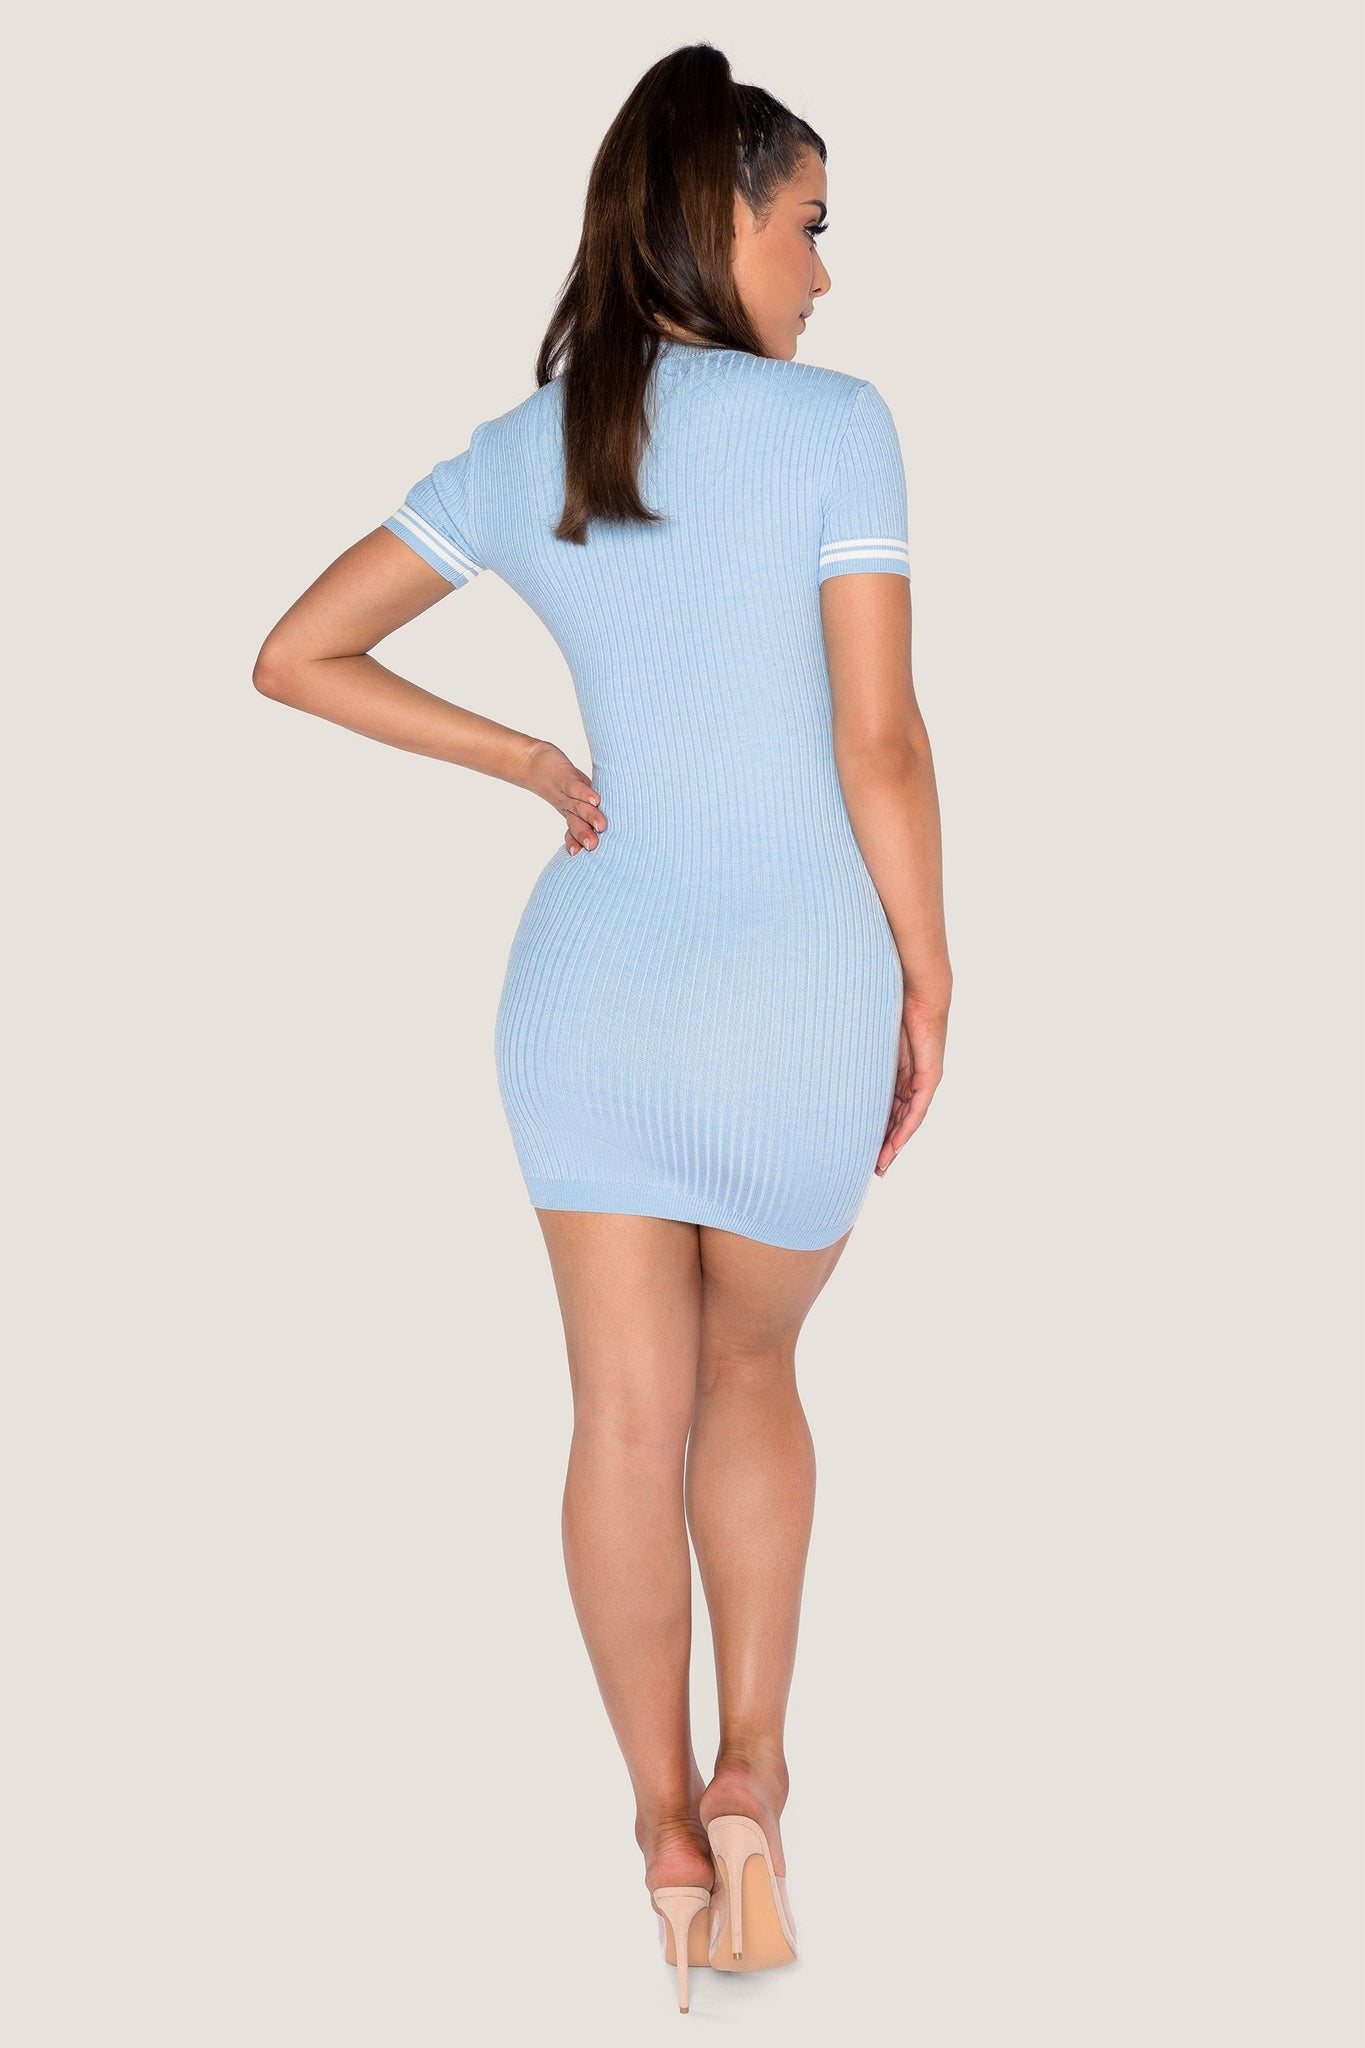 Lauri Short Sleeve Mini Dress - Baby Blue - MESHKI